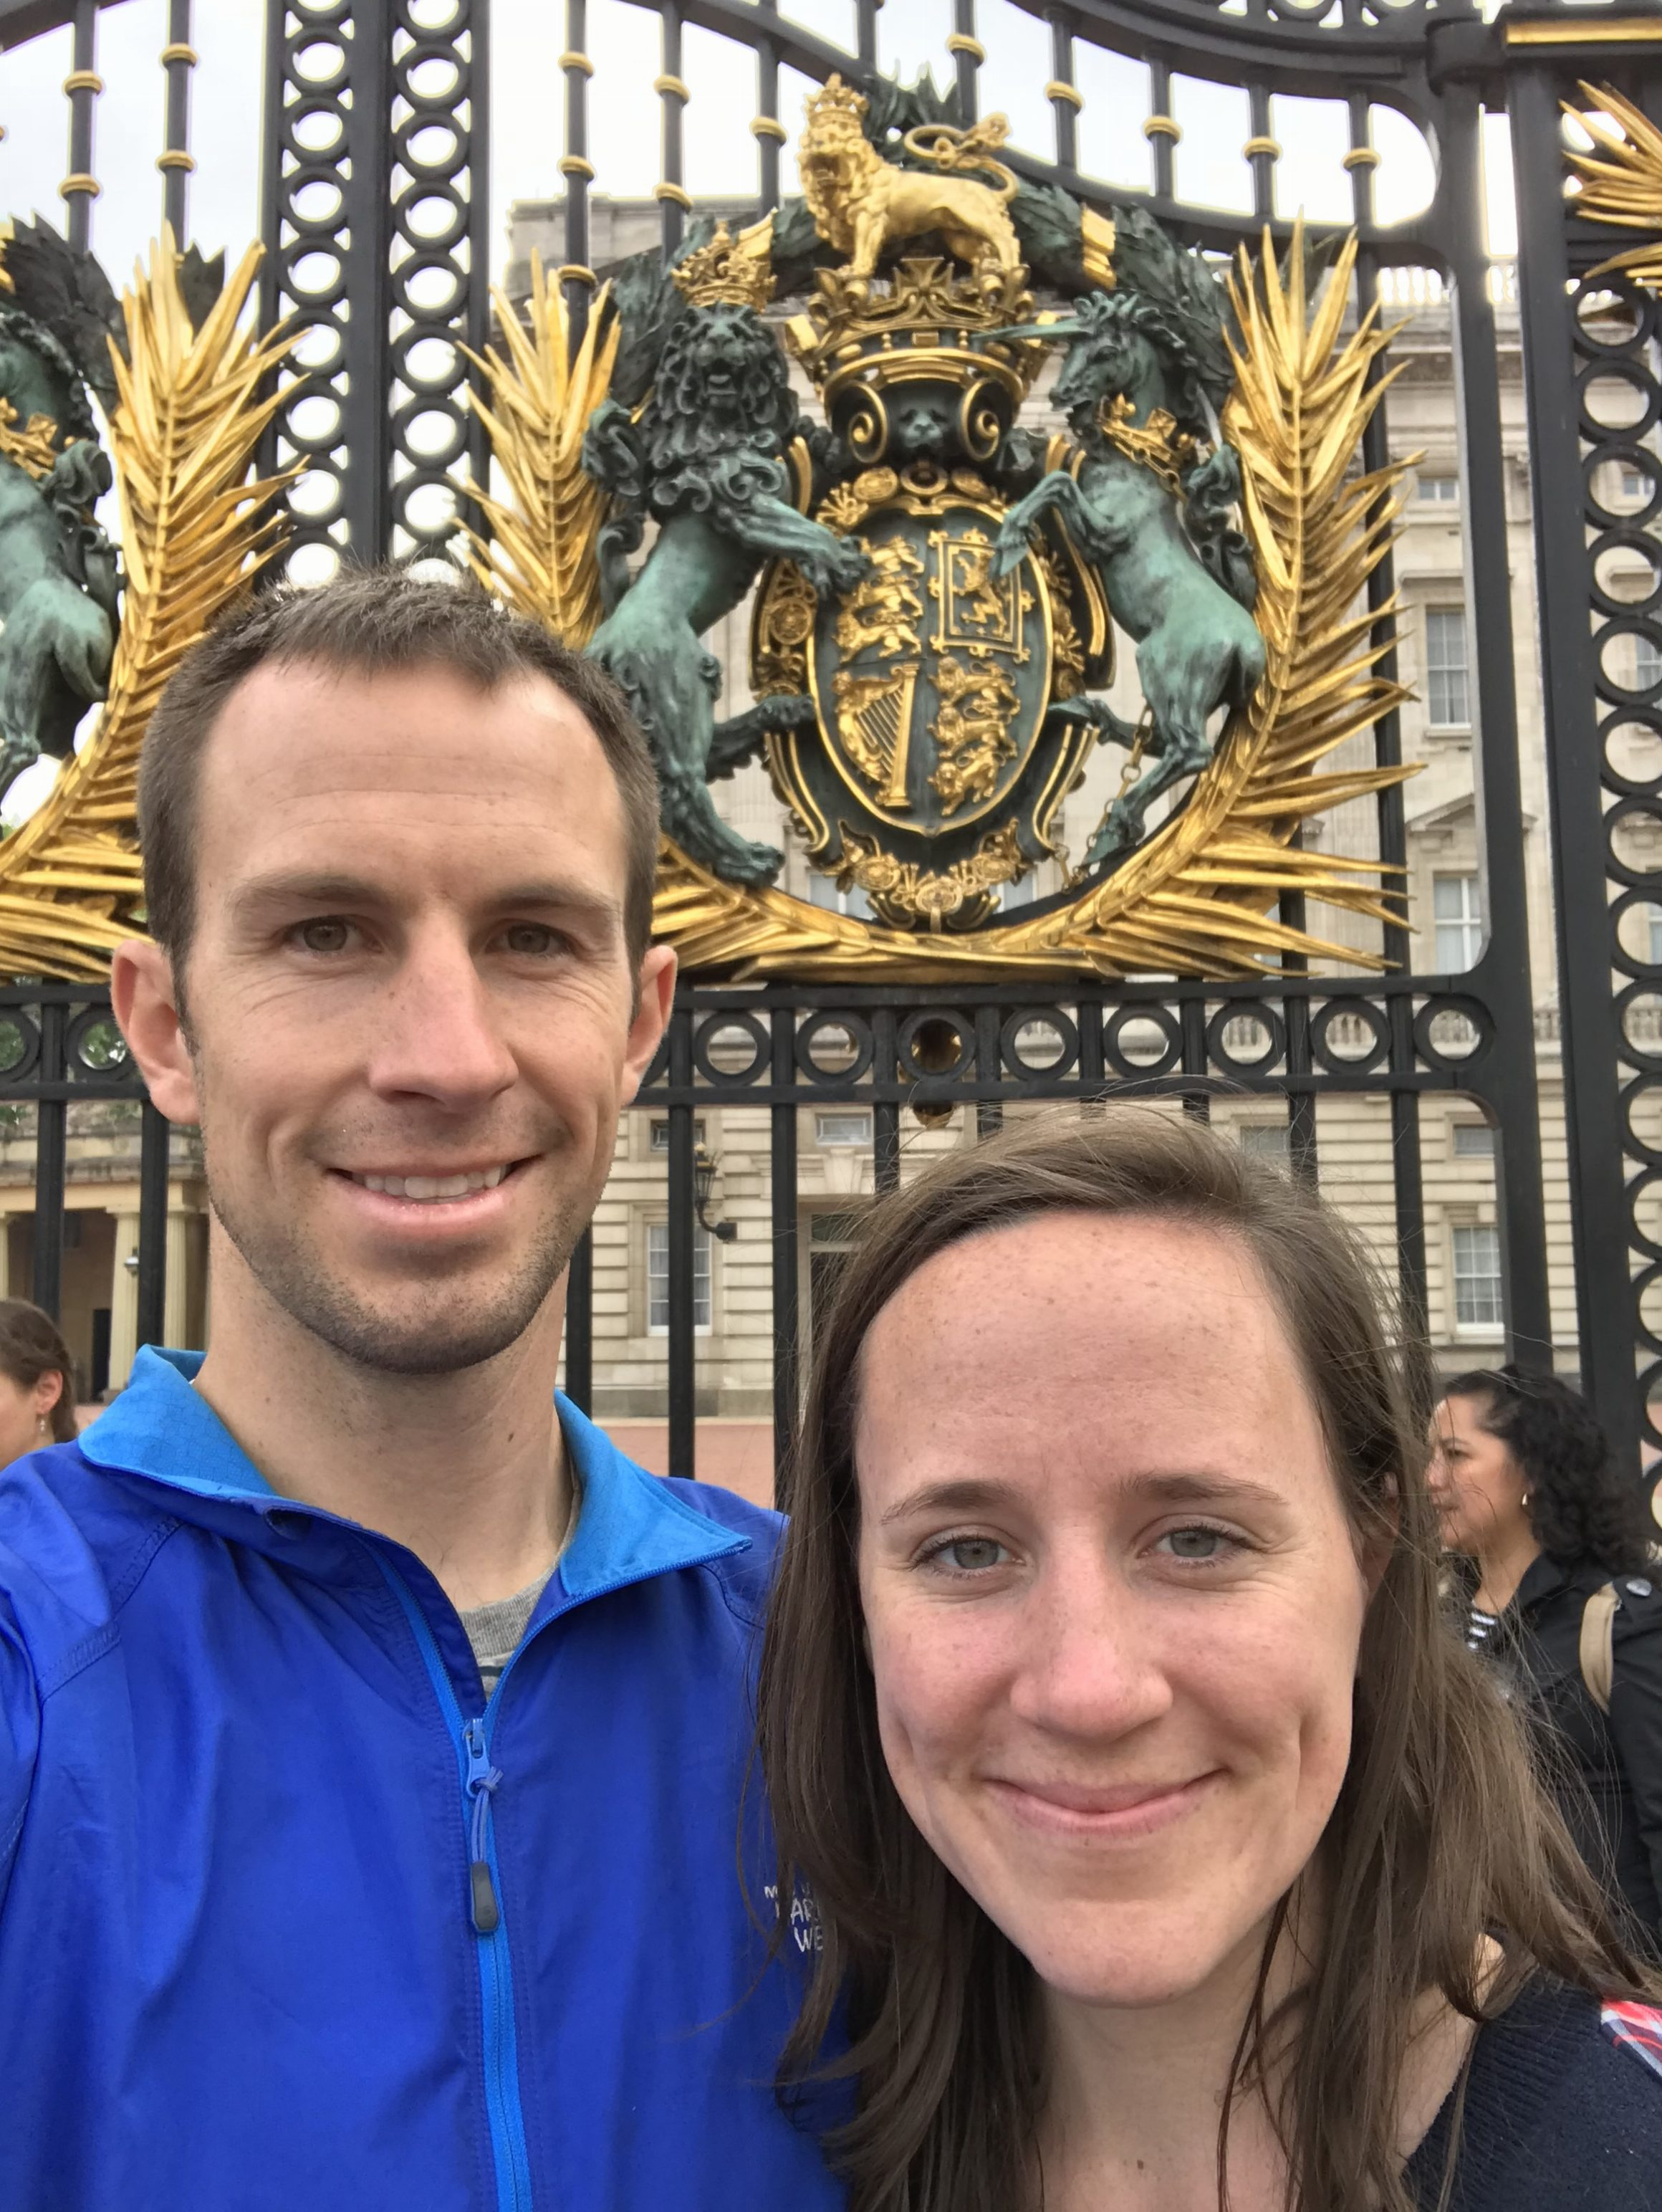 Nick & Bre in front of Buckingham Palace